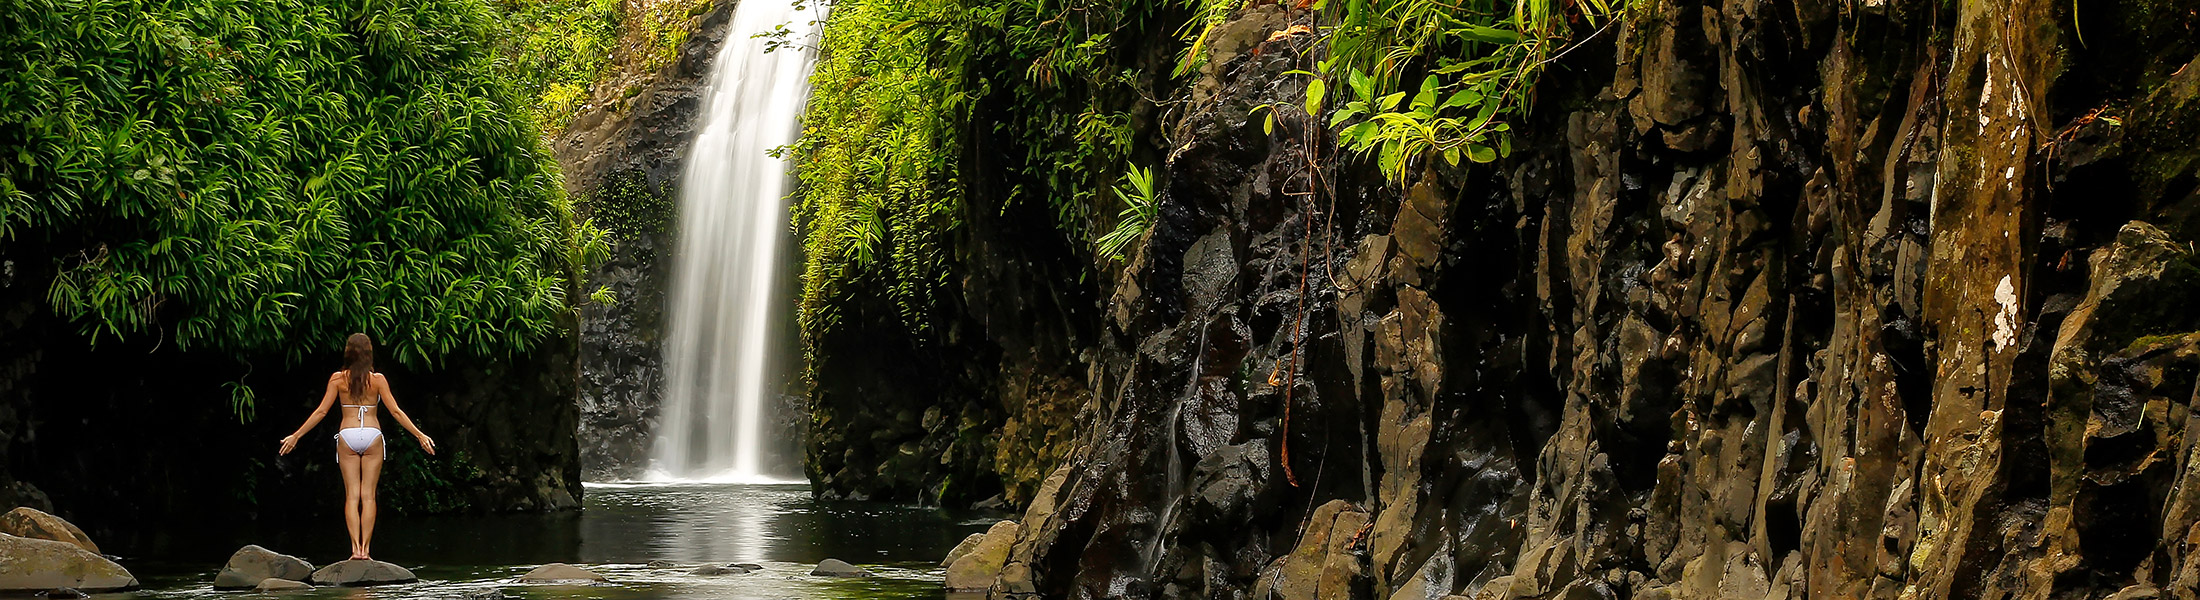 Woman at the base of a waterfall in Fiji in the Pacific